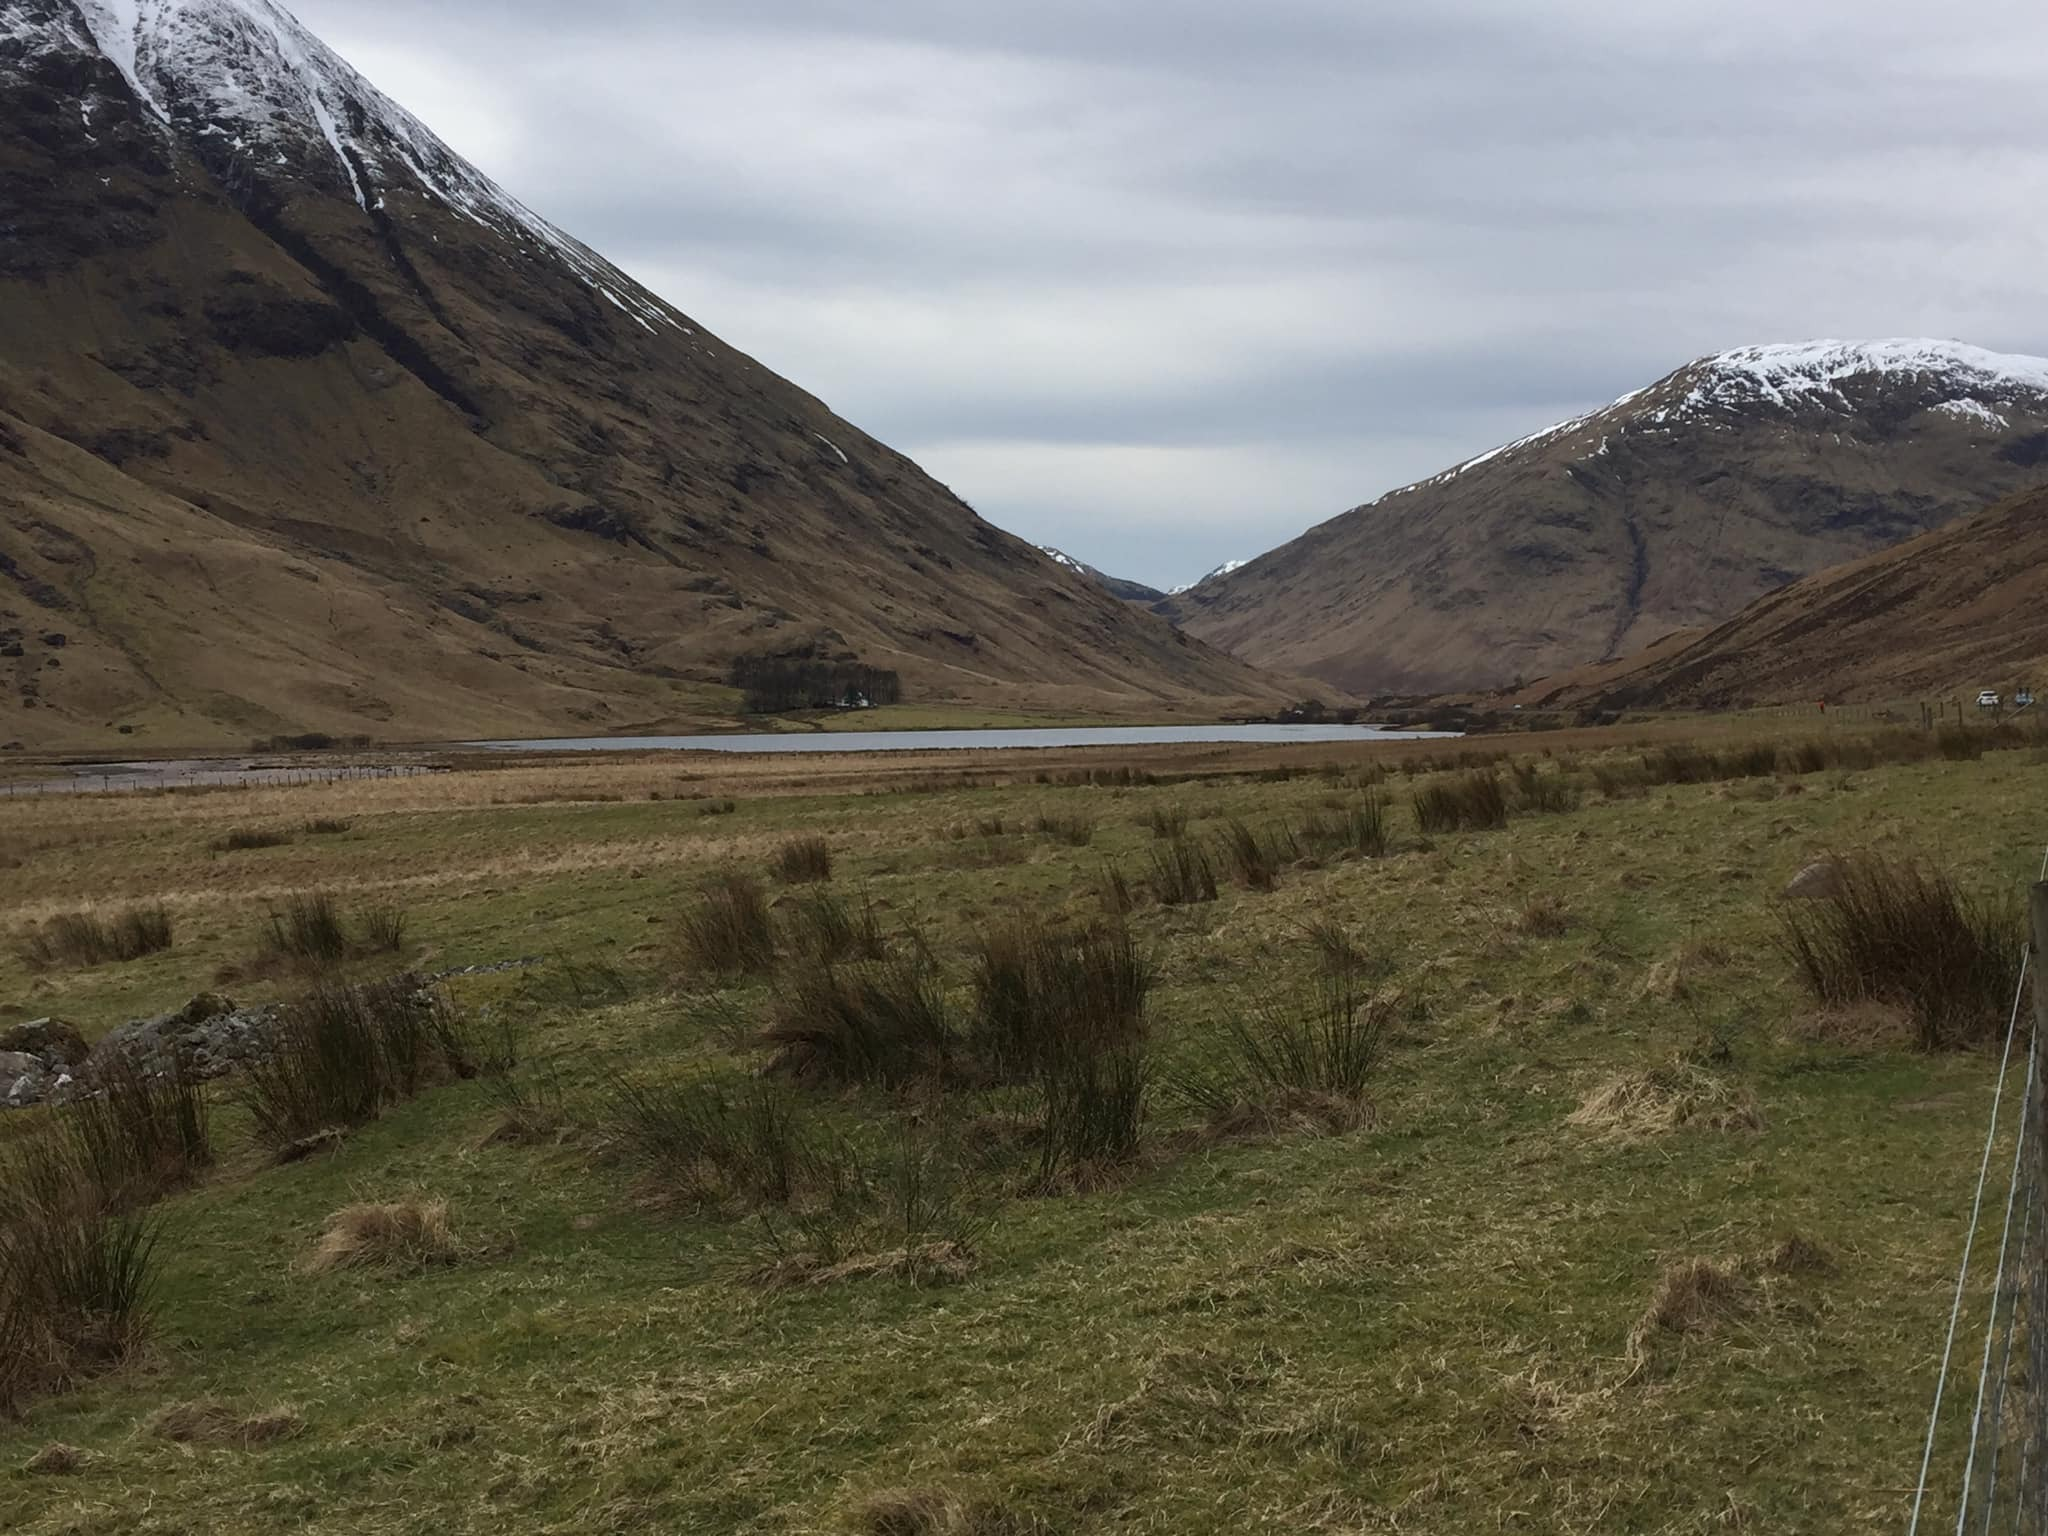 A scene from Glencoe, Scotland, not far from where Sag Harbor native Ben Lindstrom-Ives is sheltering in place during the COVID-19 pandemic.